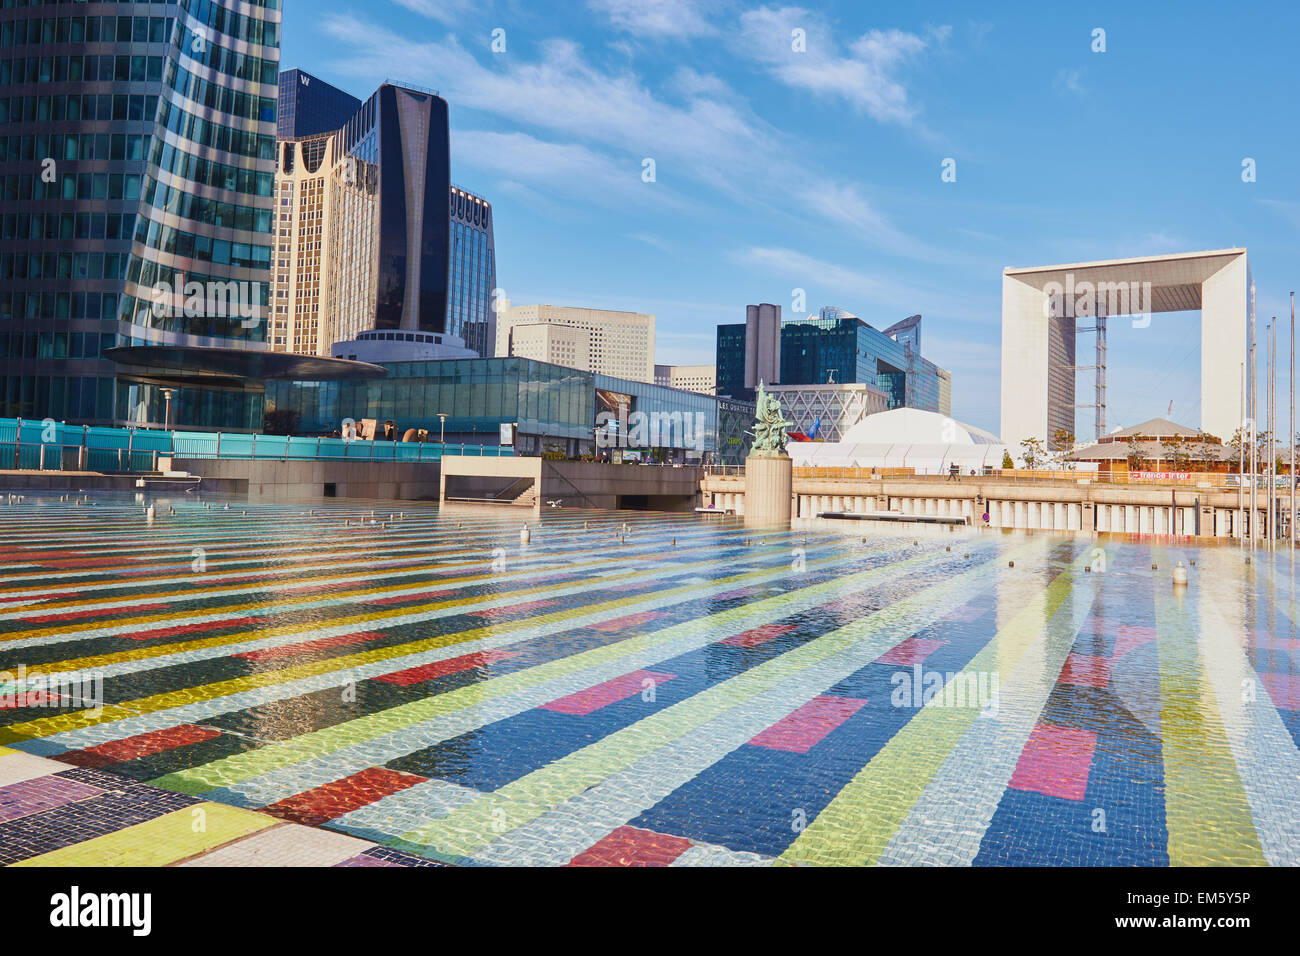 Quartier des affaires de la Défense, avec la Grande Arche en son centre Paris France Europe Photo Stock